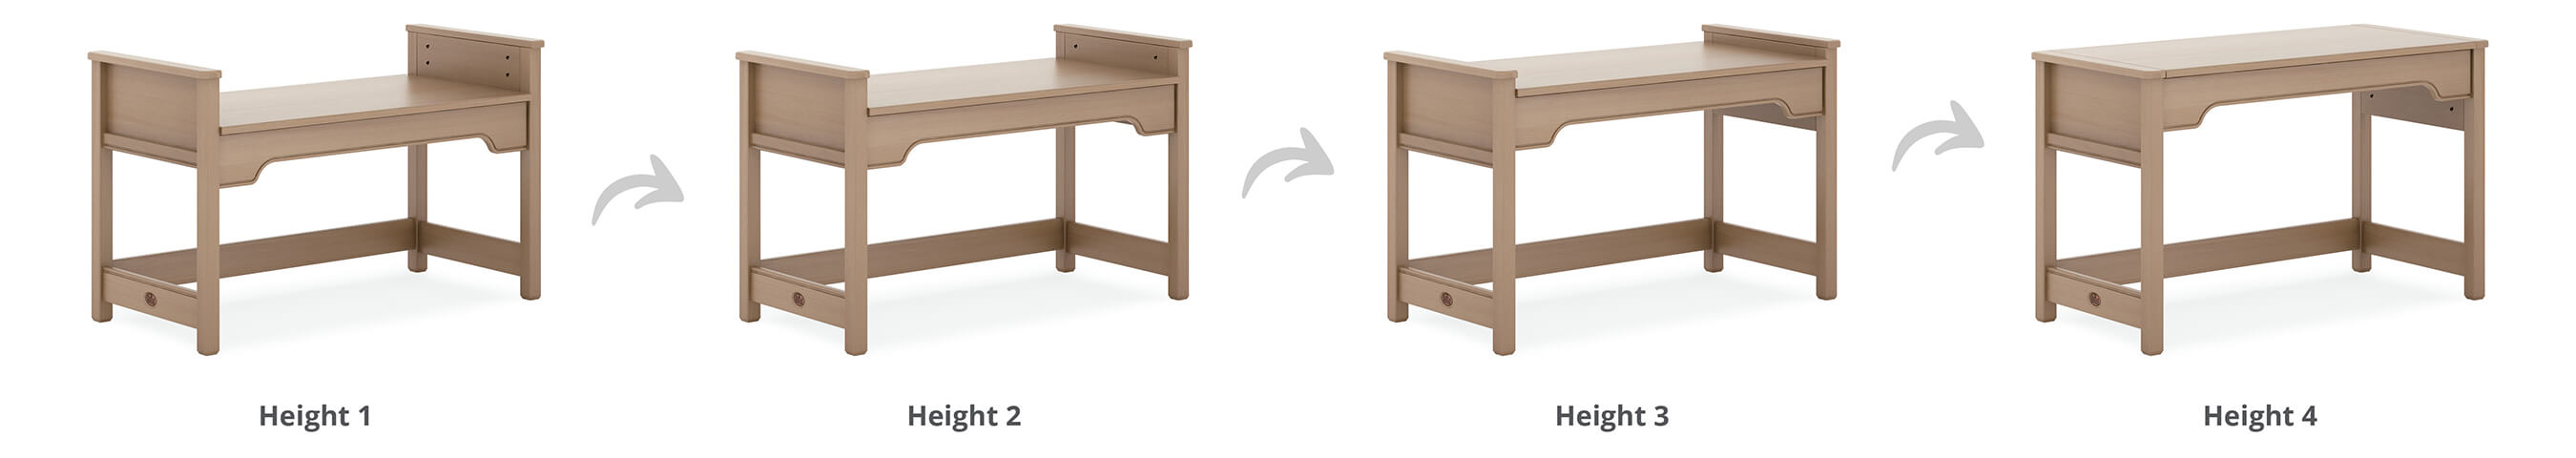 Feature_Highlight_CMS_Blocks_Height_Adjustable_Desks_and_Chairs_January_2021-027